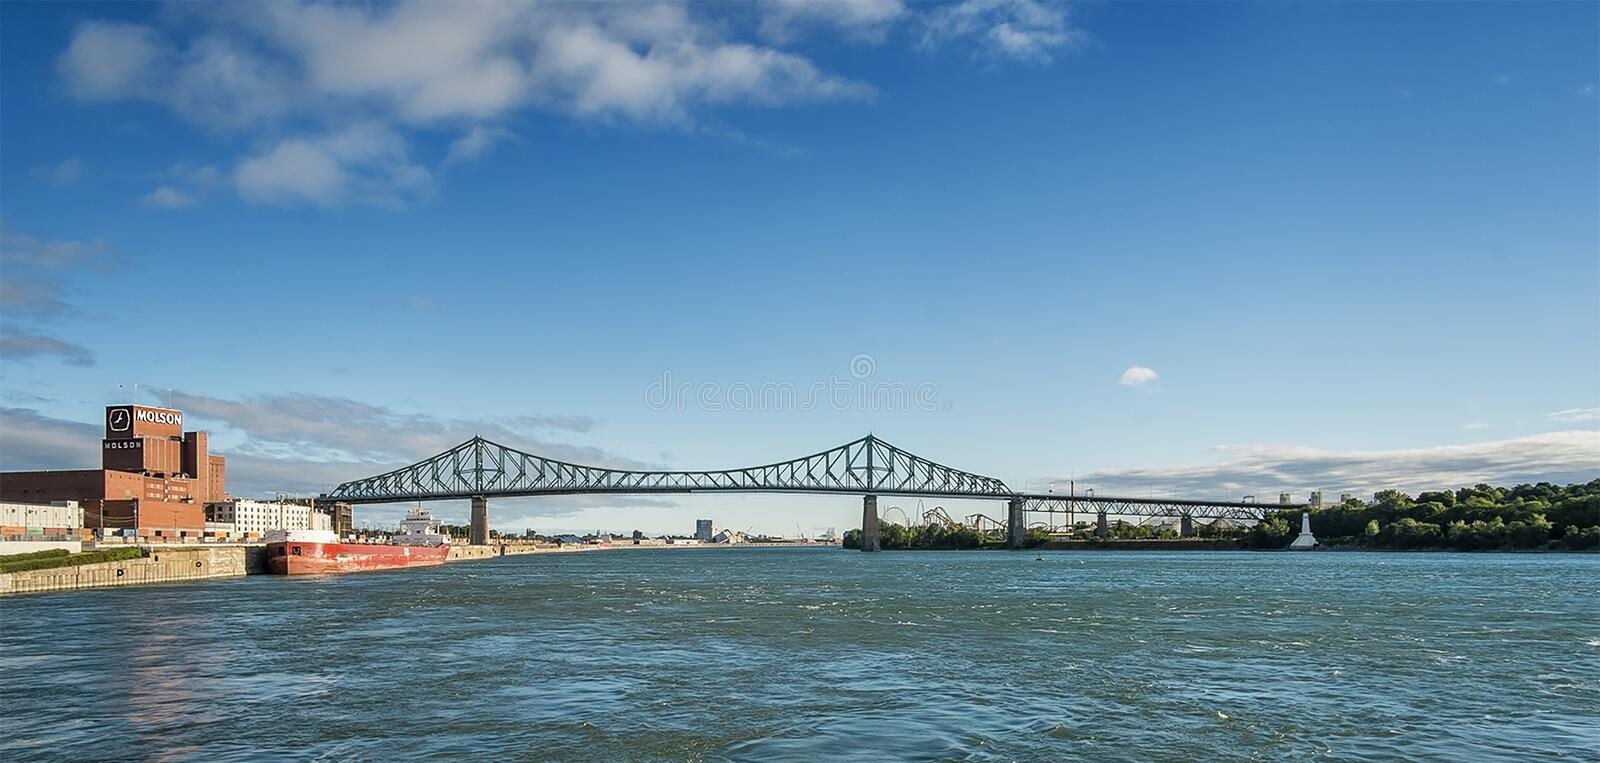 Jacques Cartier bridge. And Molson brewery as seen from Old Port Montreal, Quebec, Canada stock images